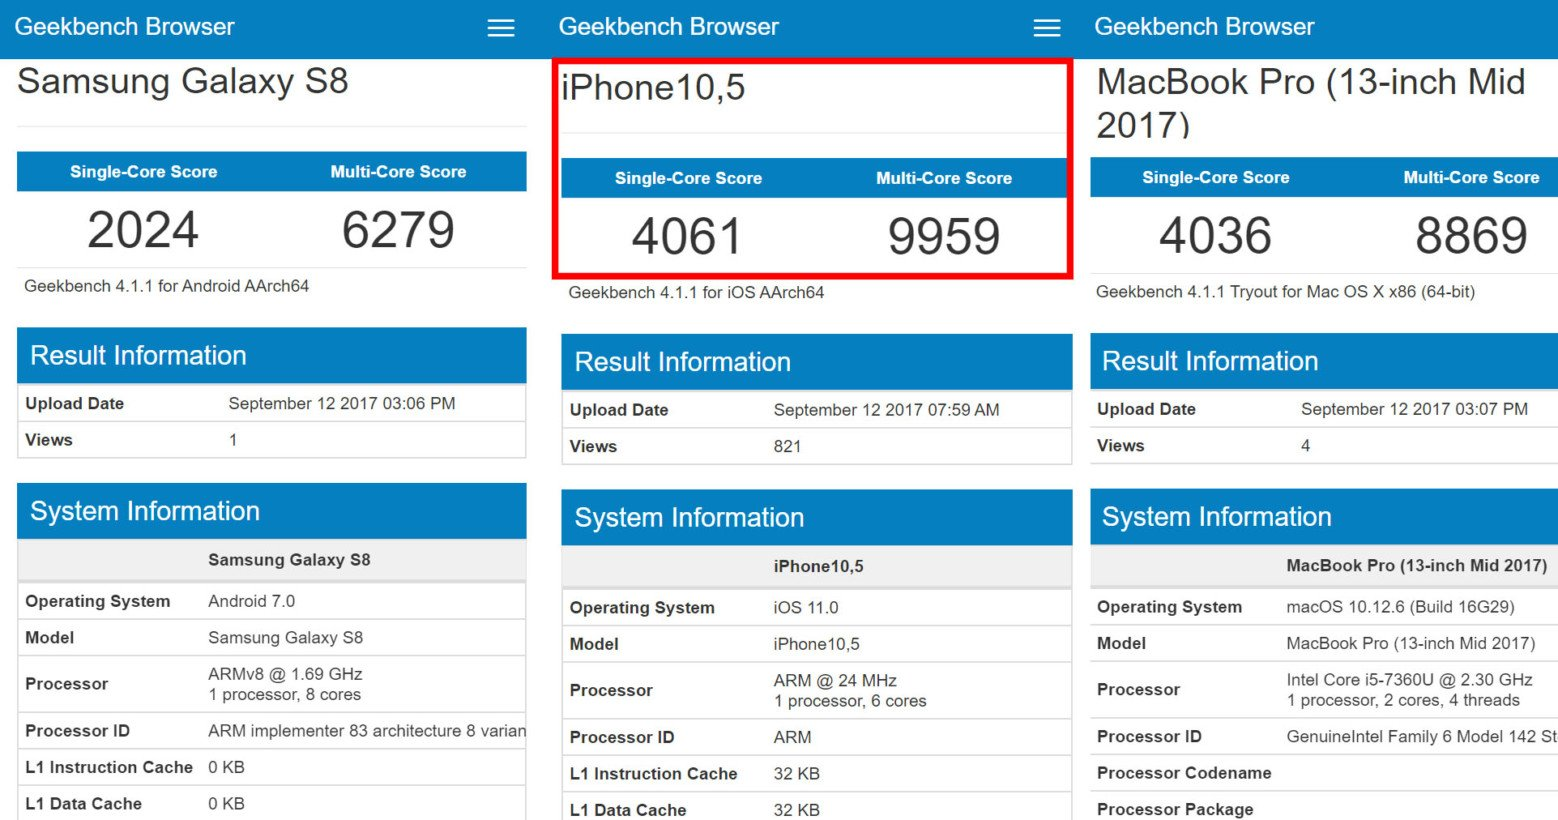 iPhone X leaked benchmarks match MacBook speeds and destroy Android phones https://t.co/EK7uPtuCBi https://t.co/1SiUAJRiMl